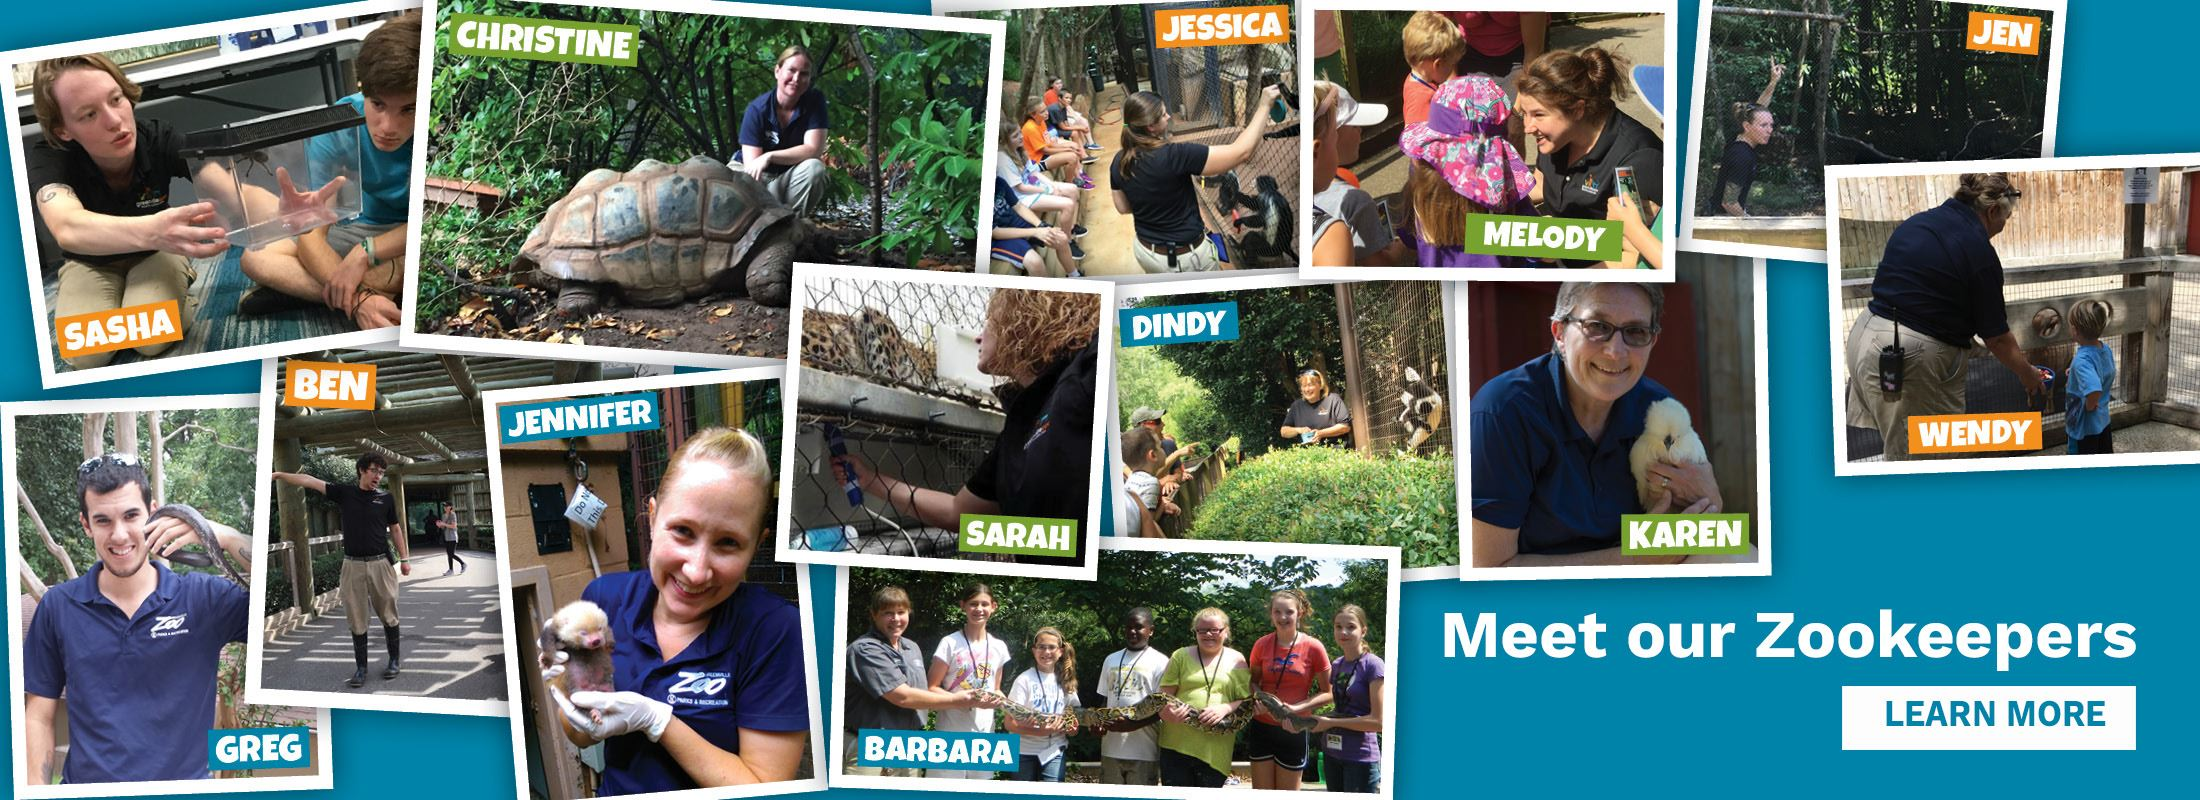 Photos of Greenville Zoo Zookeepers: Click to learn more about them